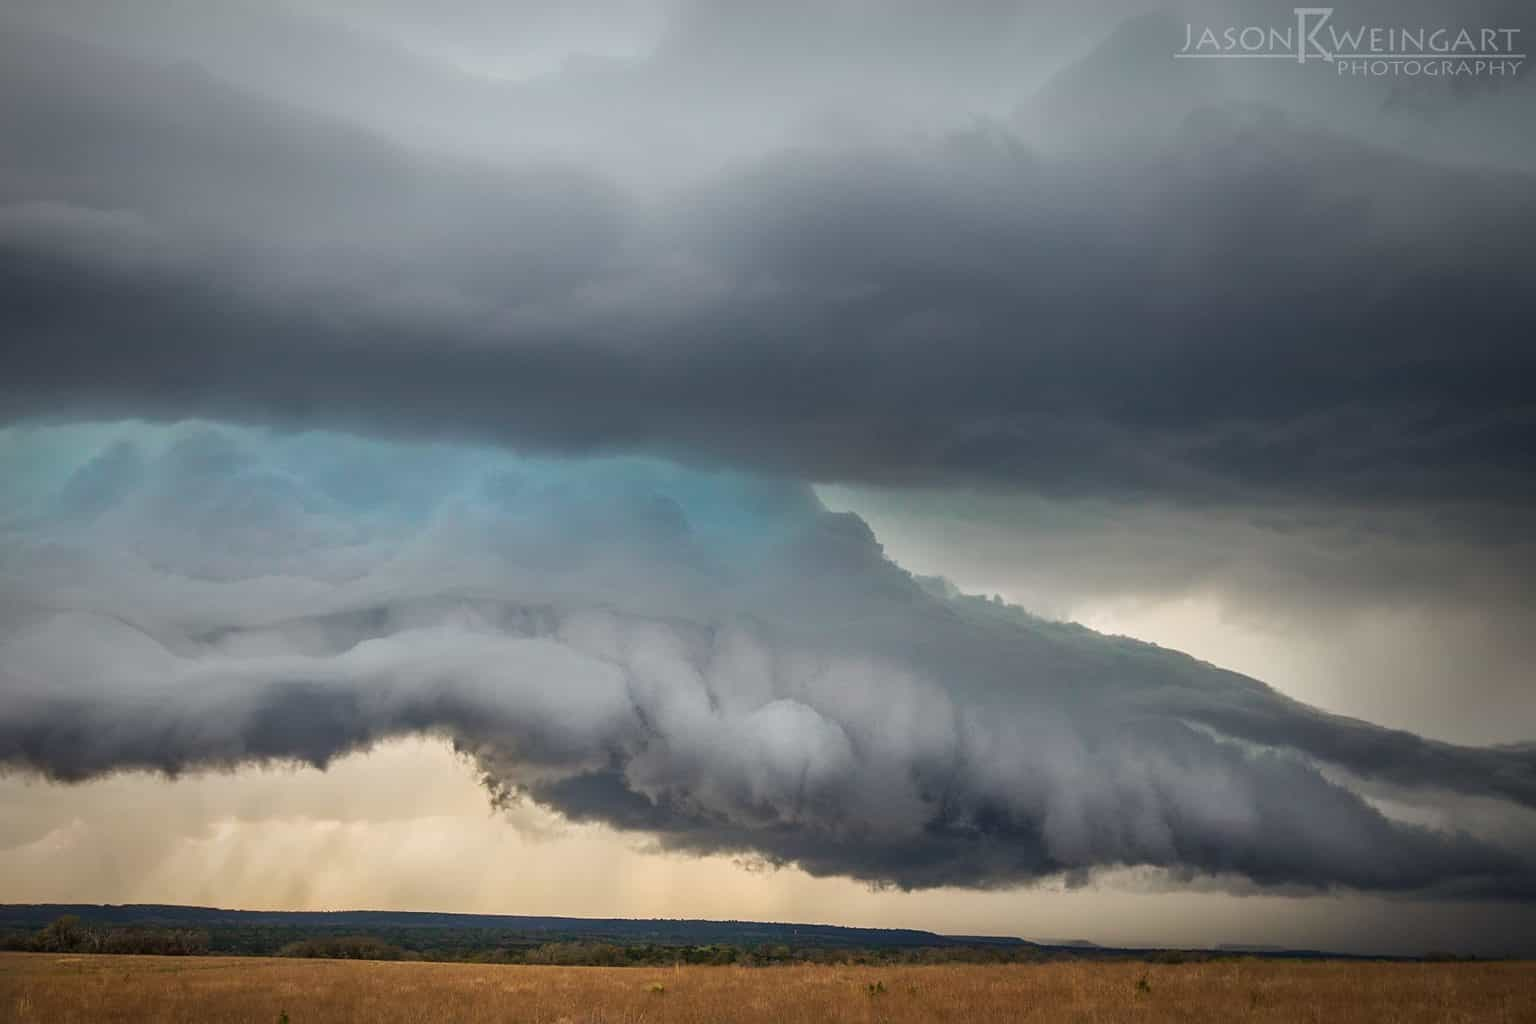 Shelf cloud yesterday near Evant, Texas. f/5.6 1/200th second ISO 800